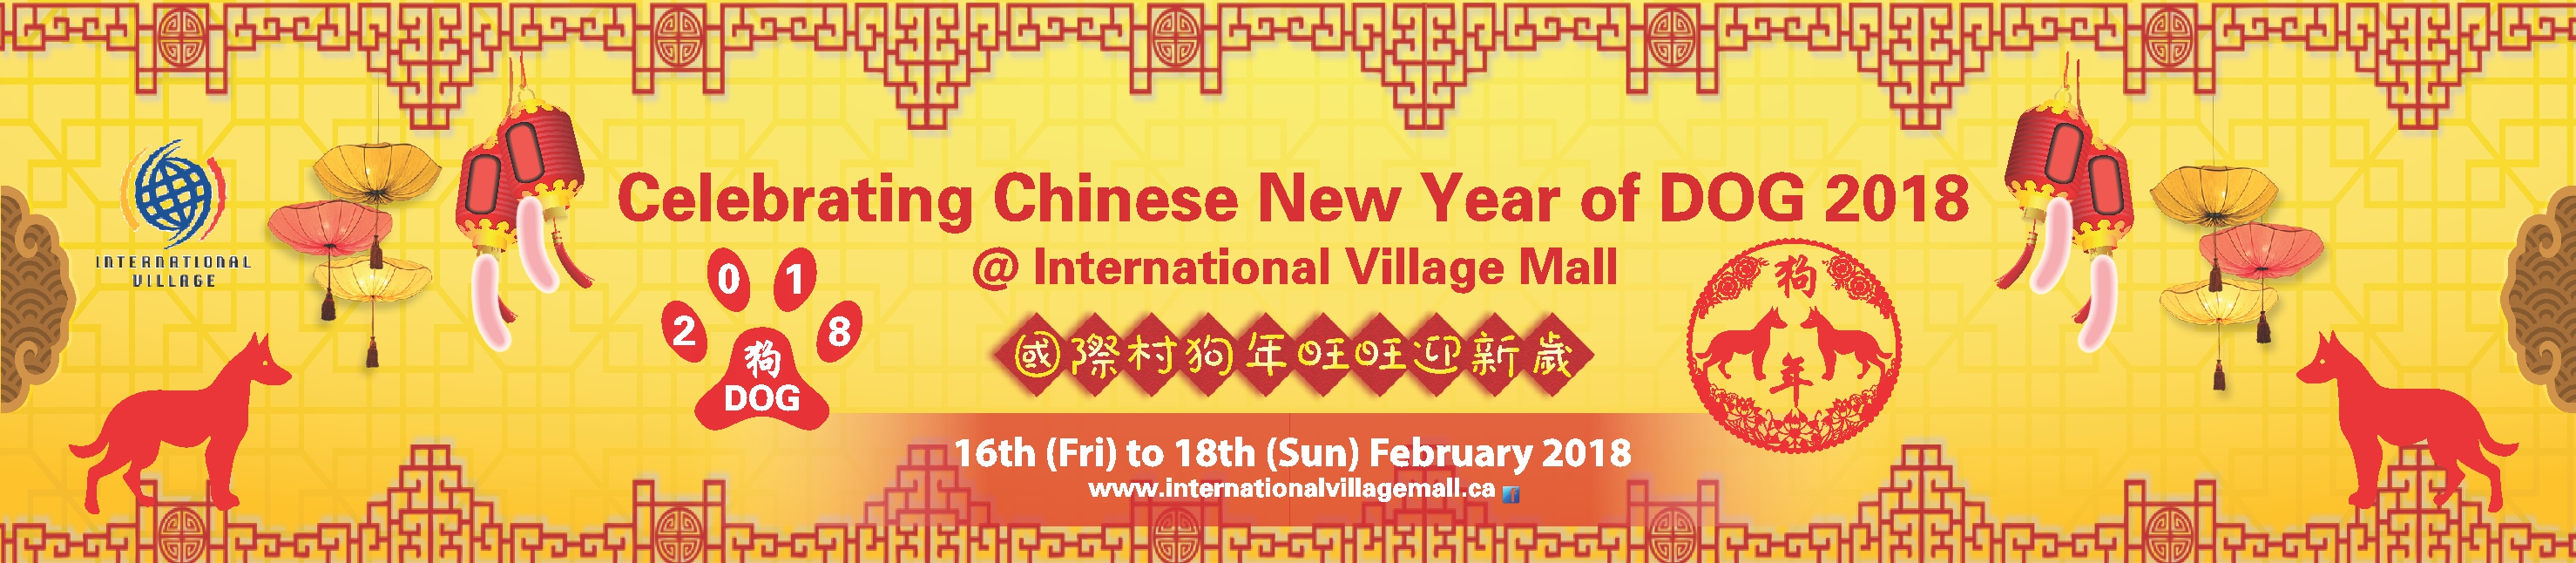 2018 International Village Mall Chinese New Year